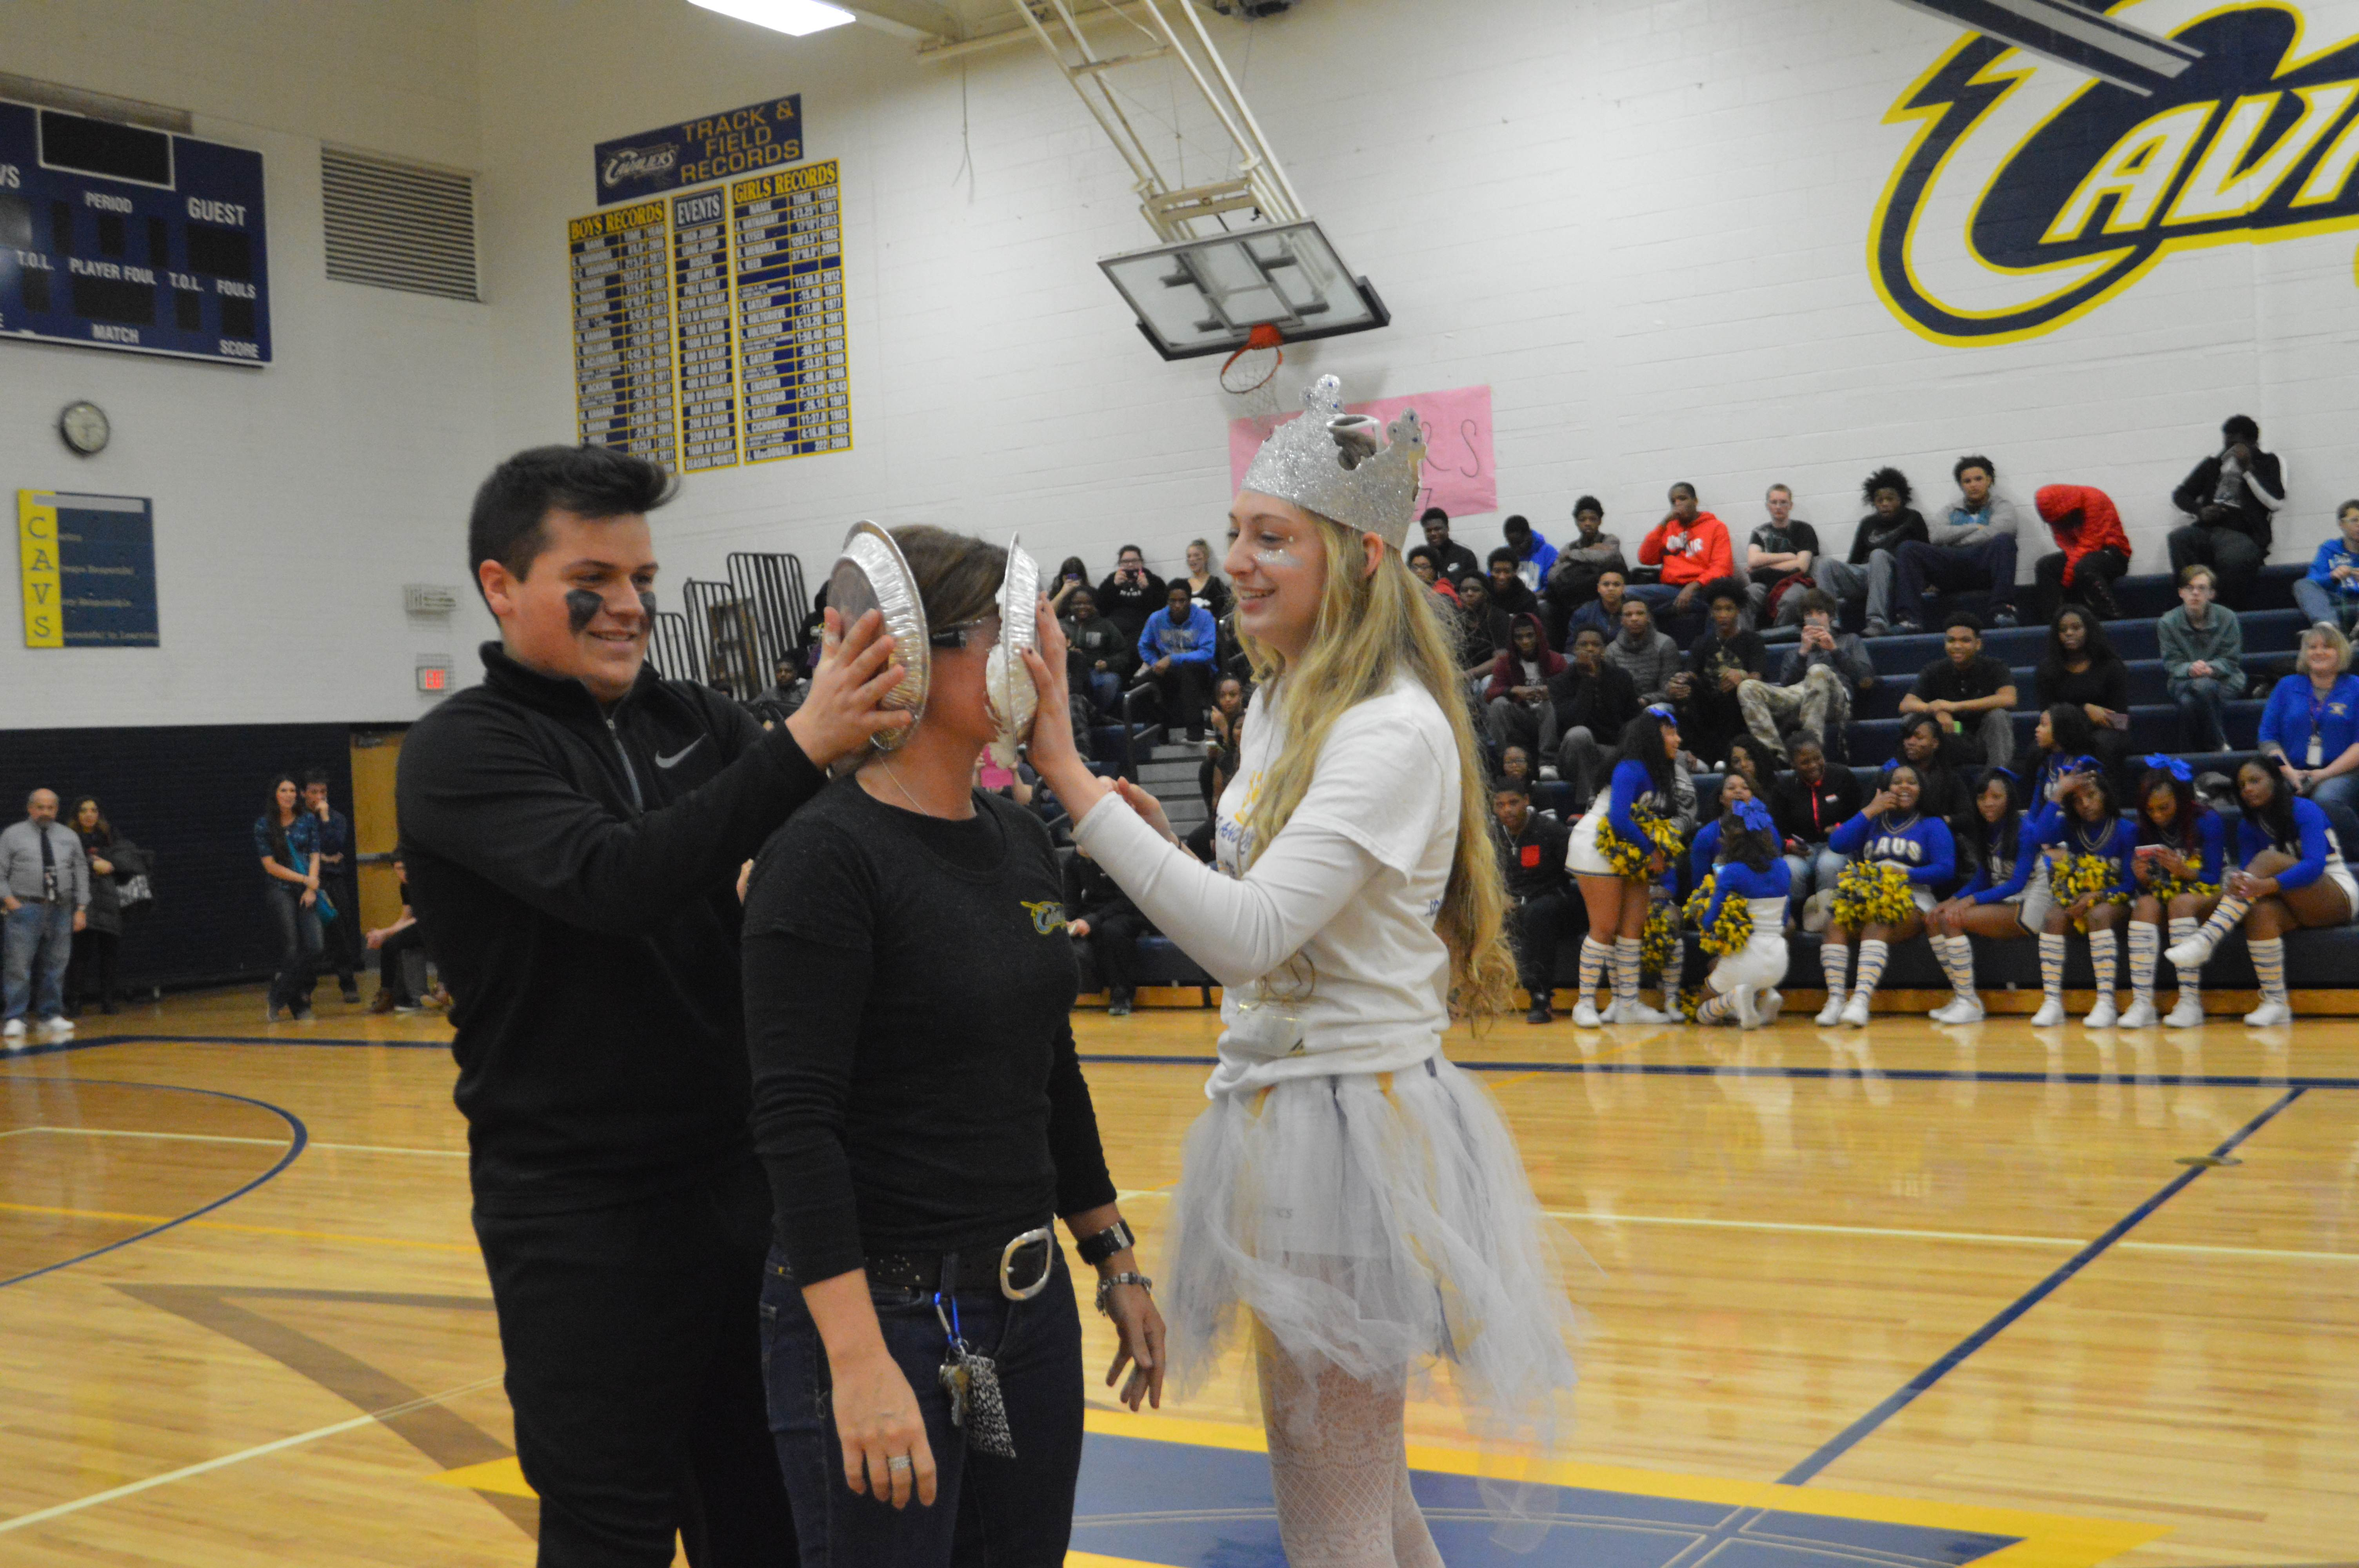 With goggles on, English Teacher Jennifer Boggio takes two pies to the face from Theo Pozios '17 and Emily Estrada '16.